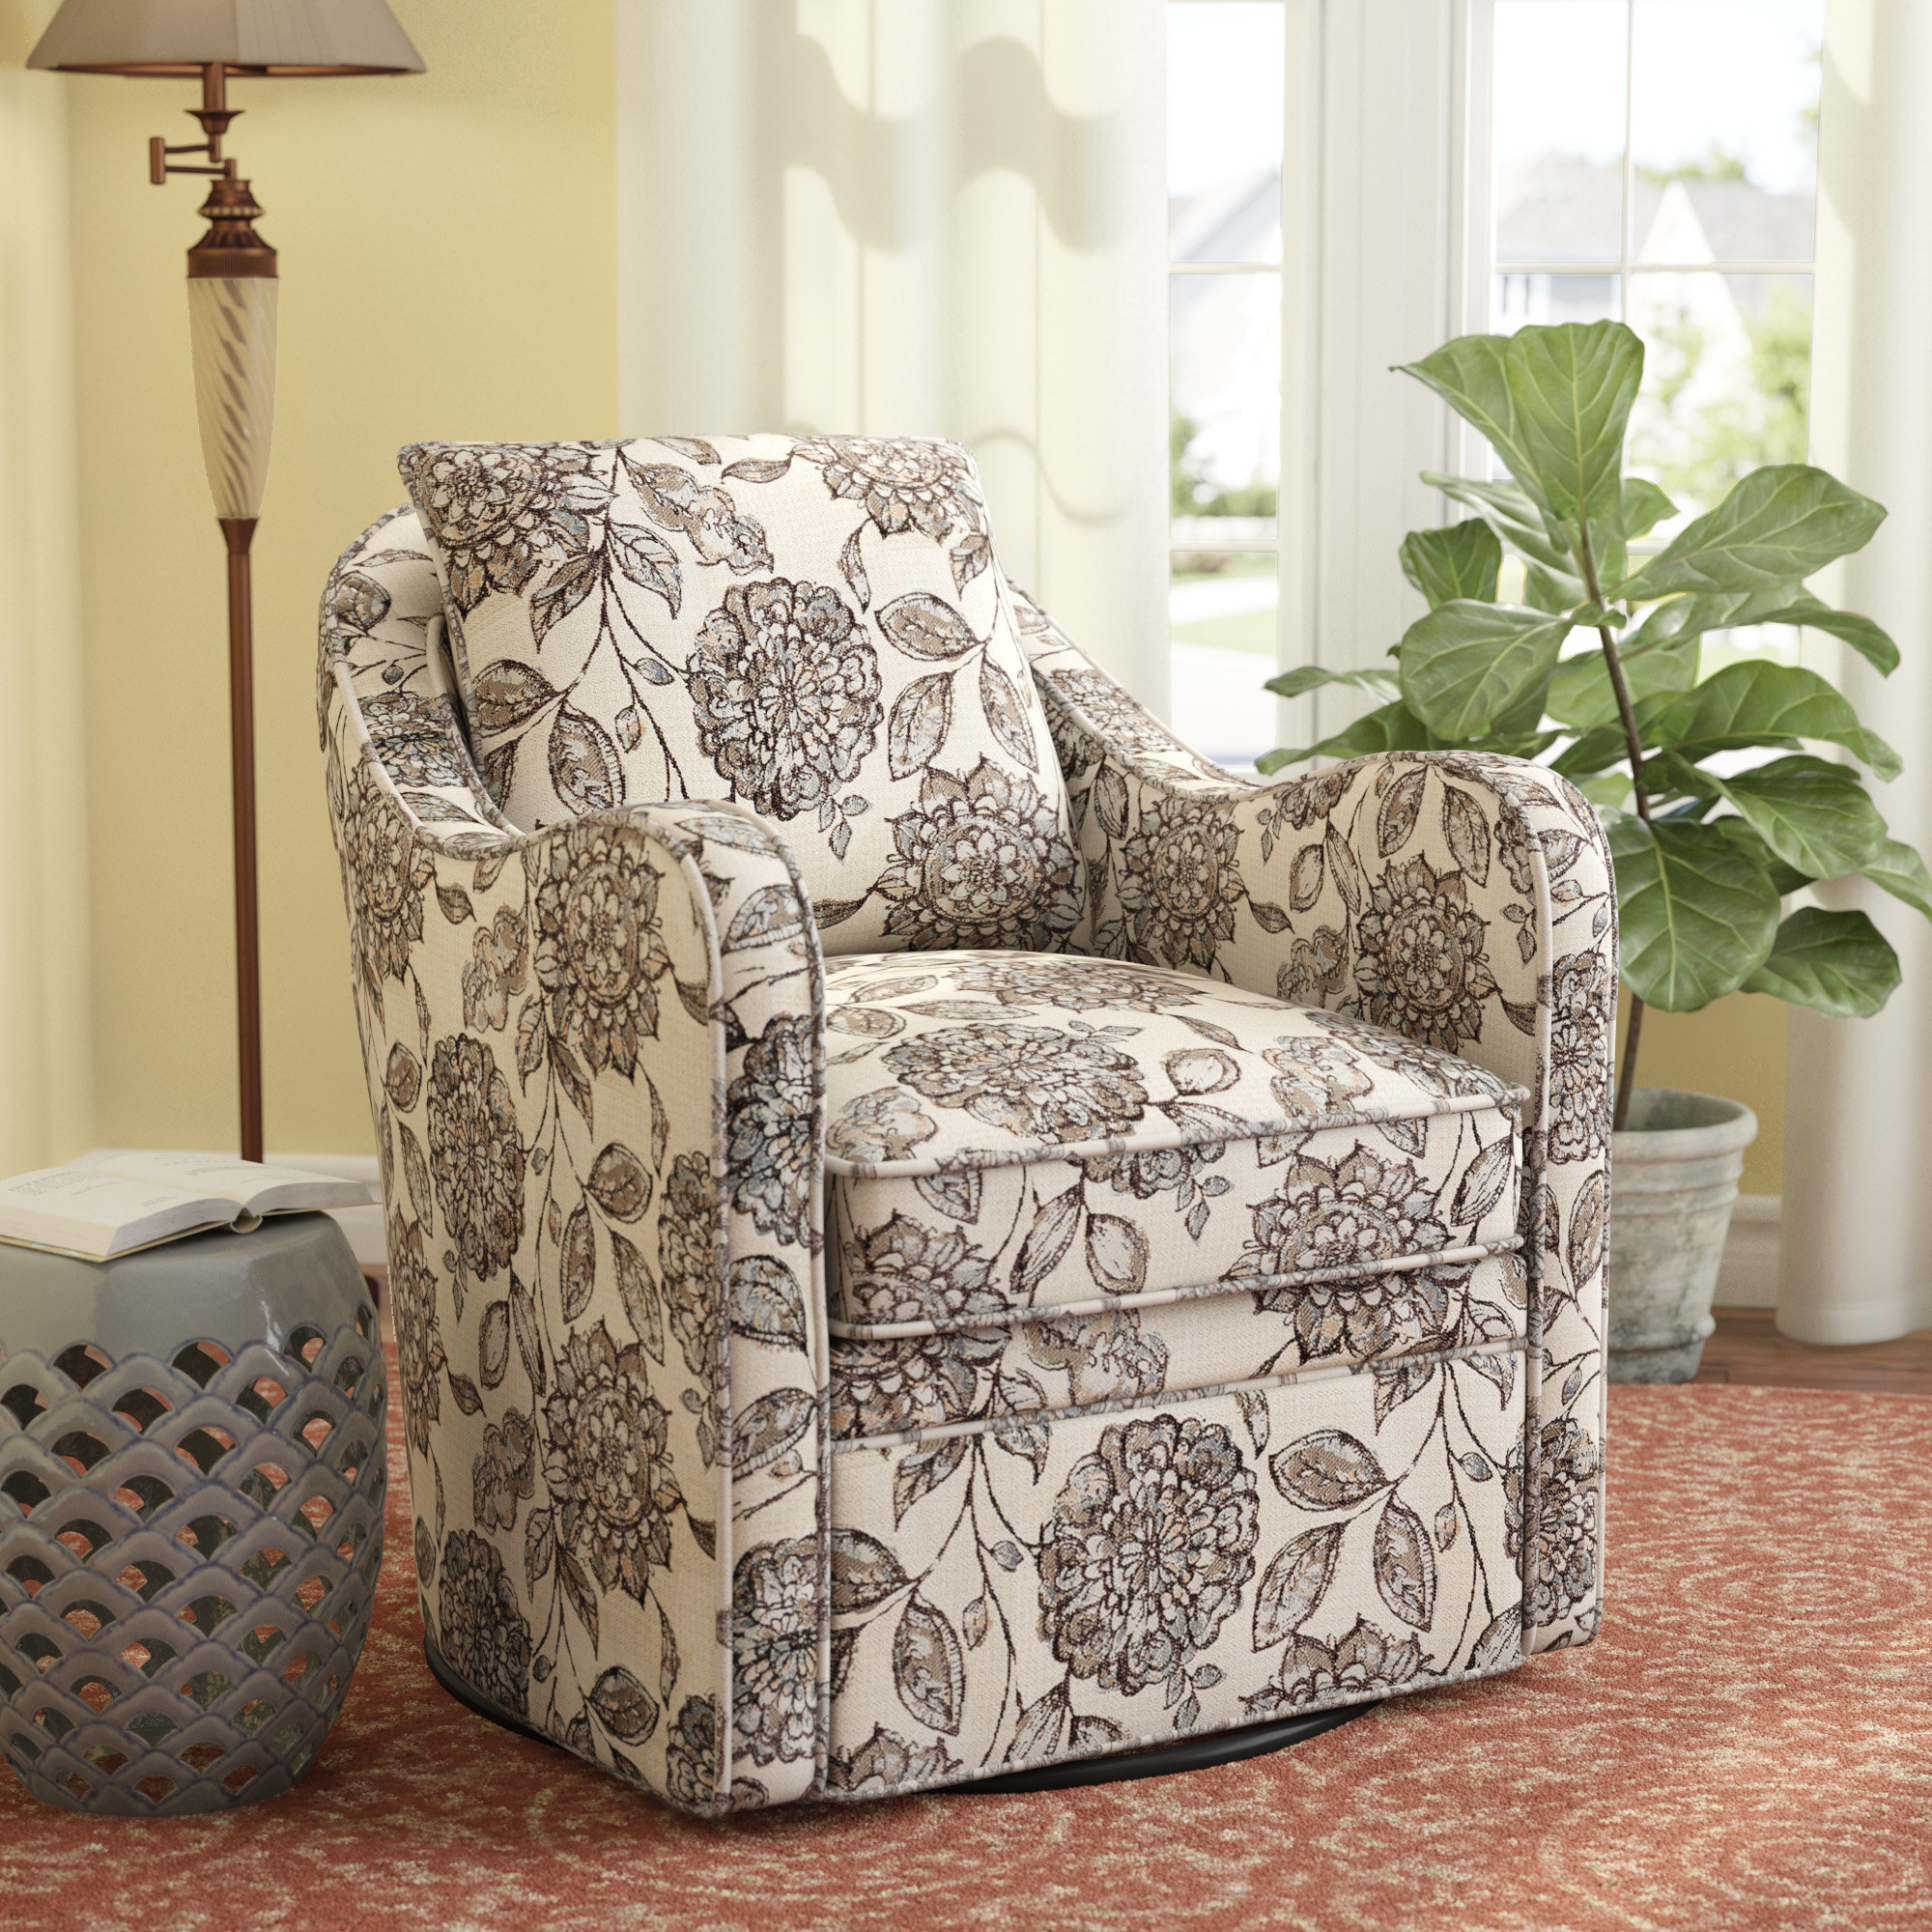 Alcott Hill Brick And Barrel Swivel Armchair & Reviews | Wayfair With Regard To Revolve Swivel Accent Chairs (View 2 of 23)